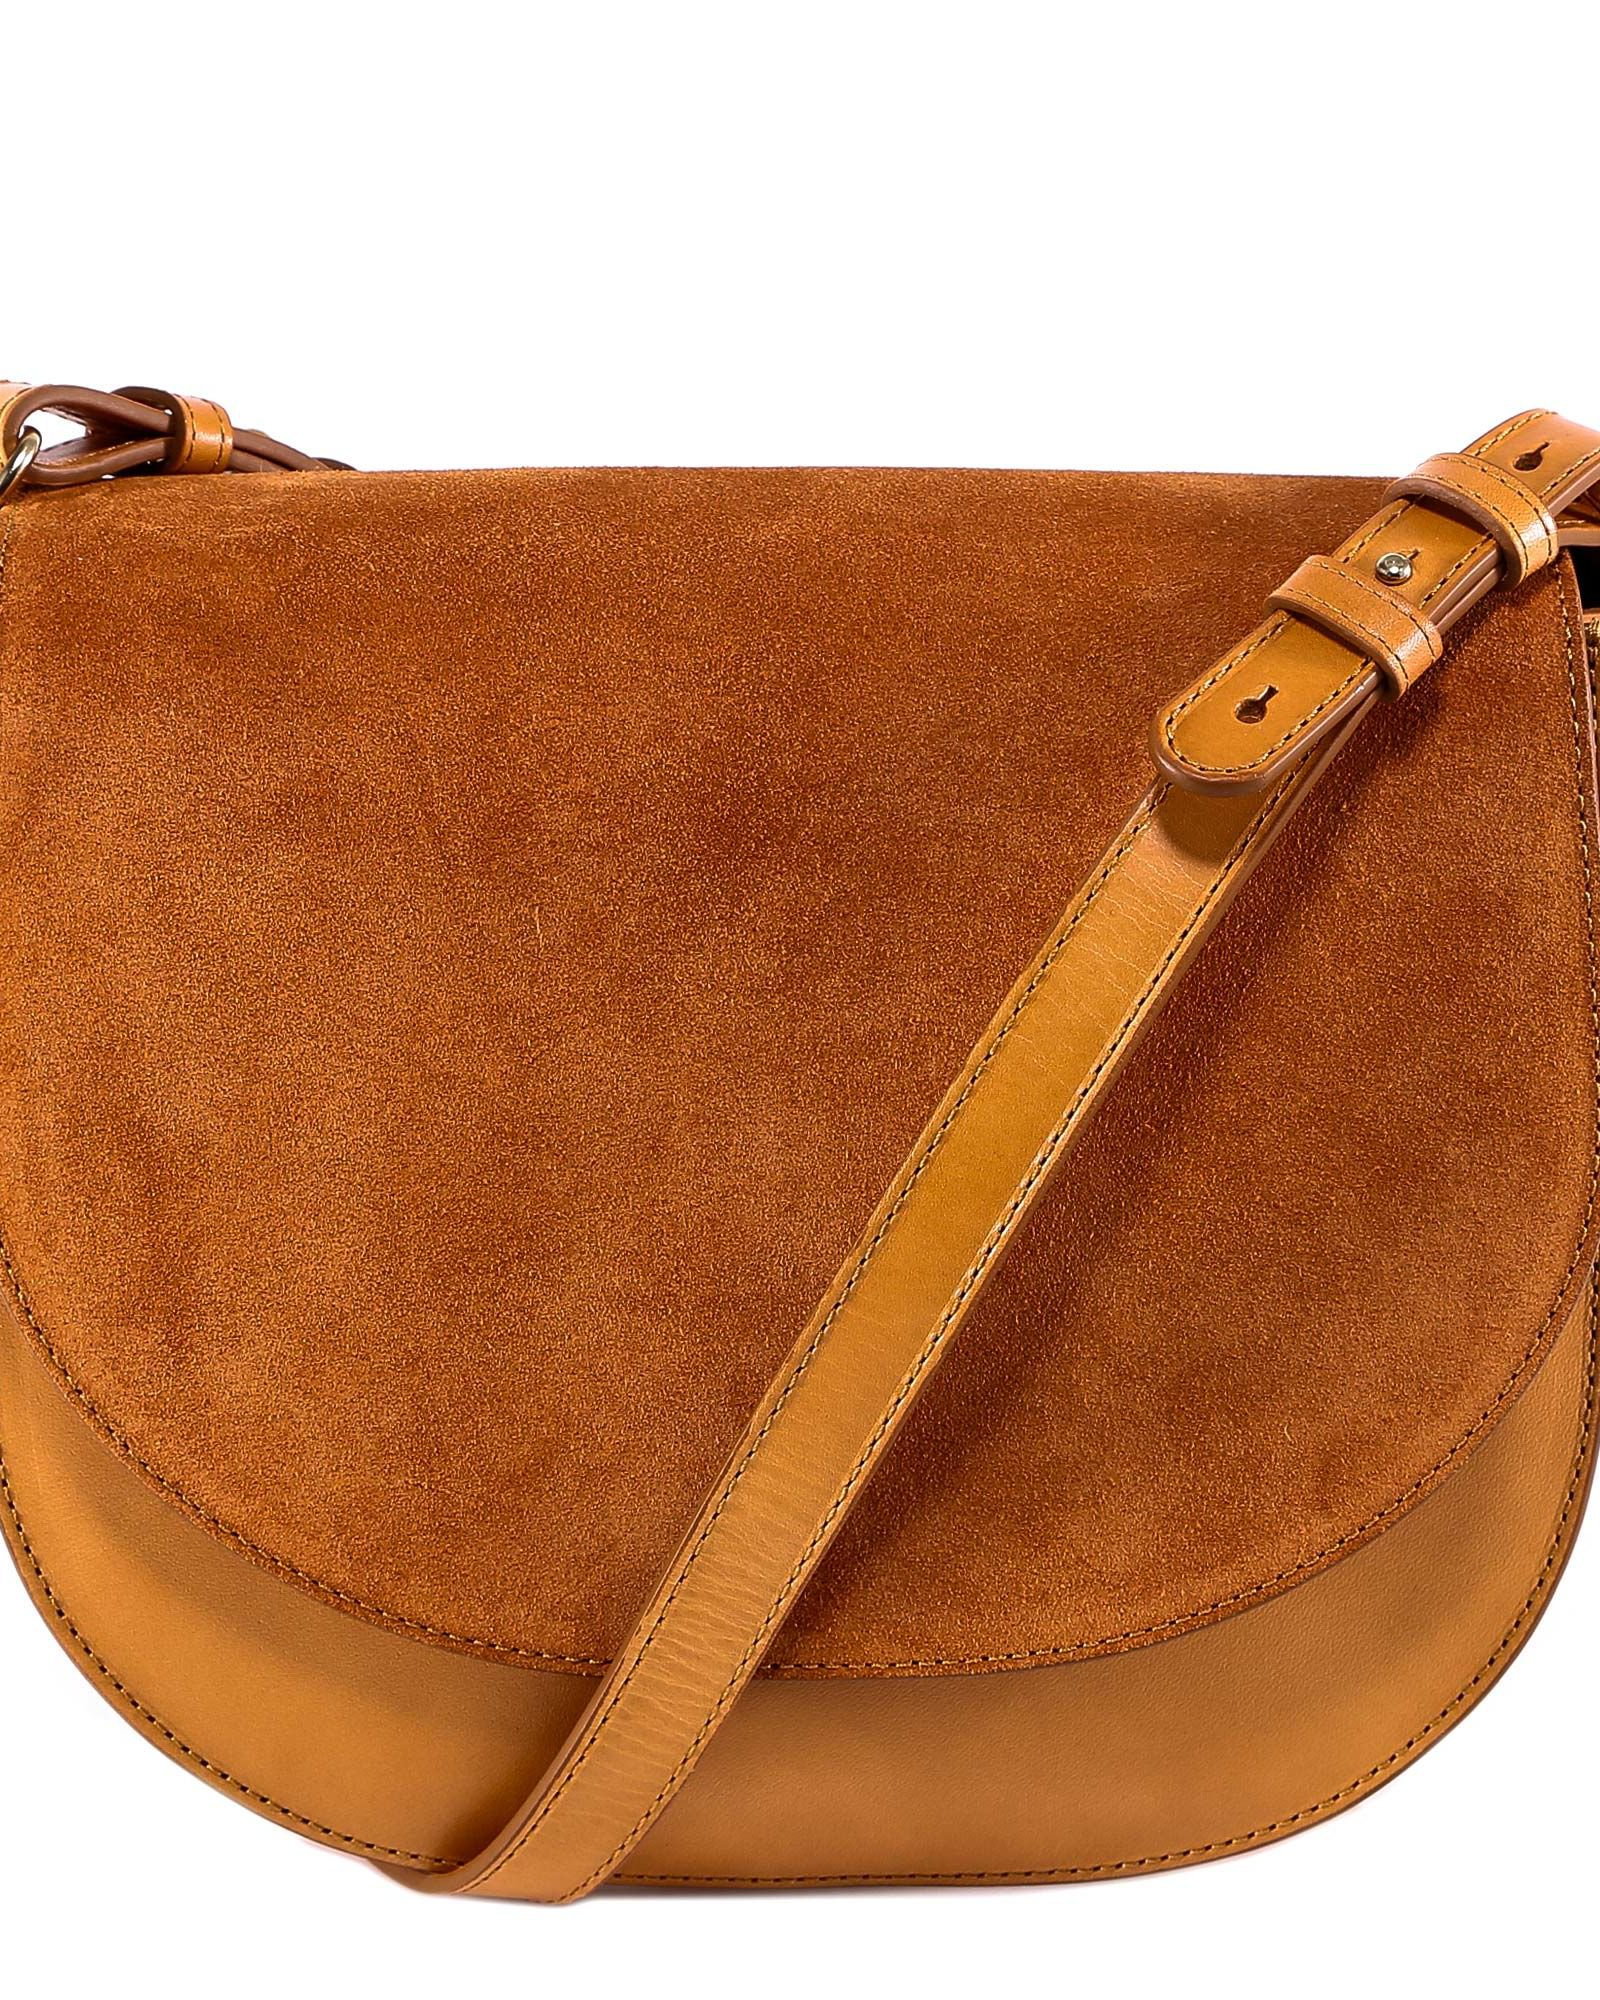 Closed Saddle Bag Shoulder Bag